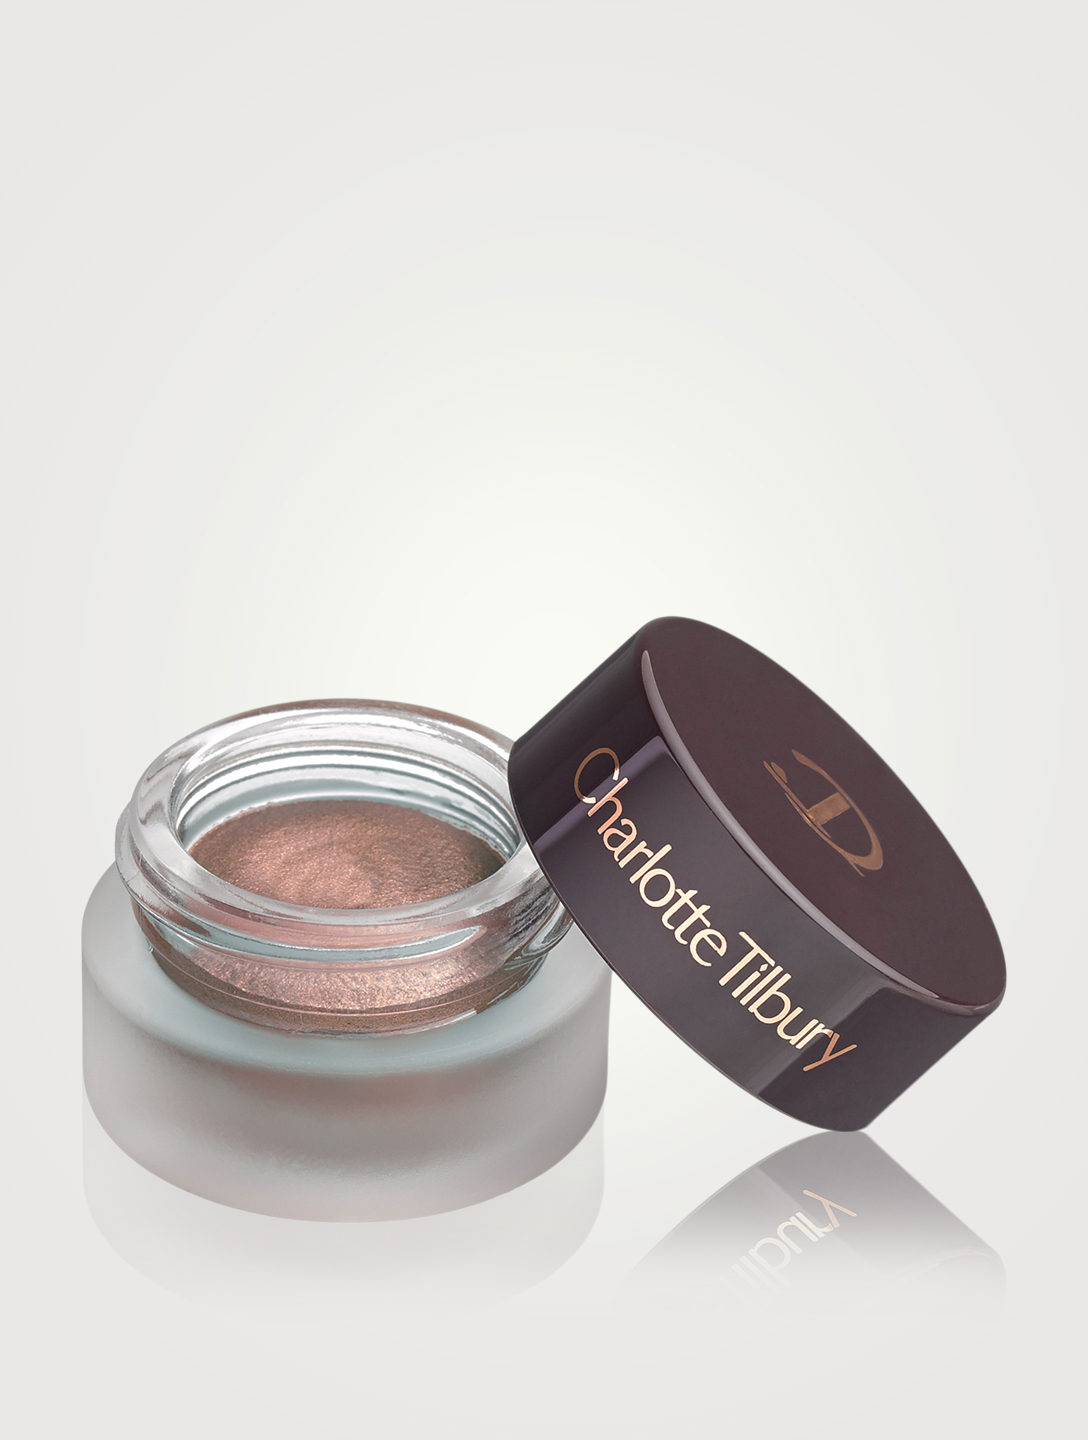 CHARLOTTE TILBURY Eyes To Mesmerise Cream Eyeshadow Beauty Metallic